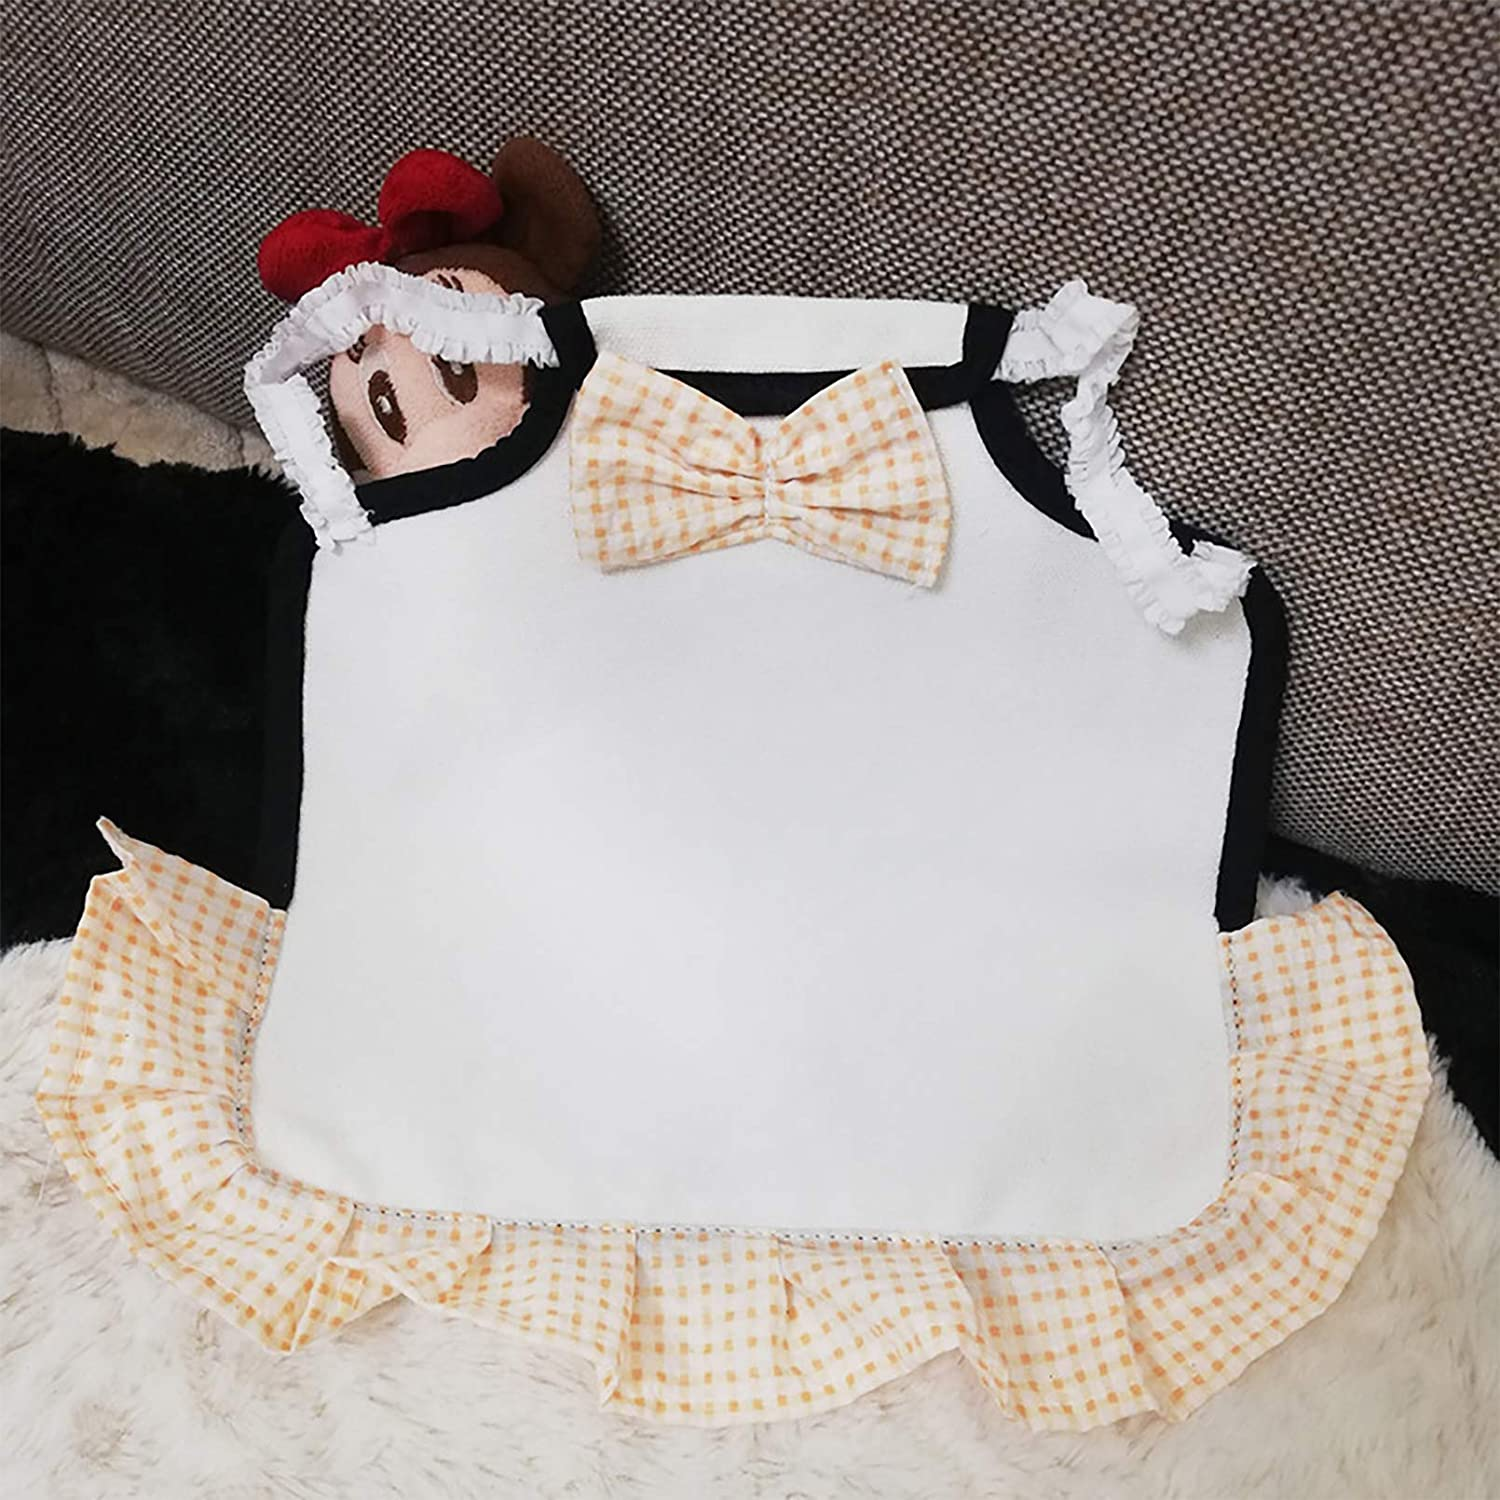 3 Pack Chicken Saddle with Elastic Straps Chicken Aprons for Hens Standard Size Chicken Jacket